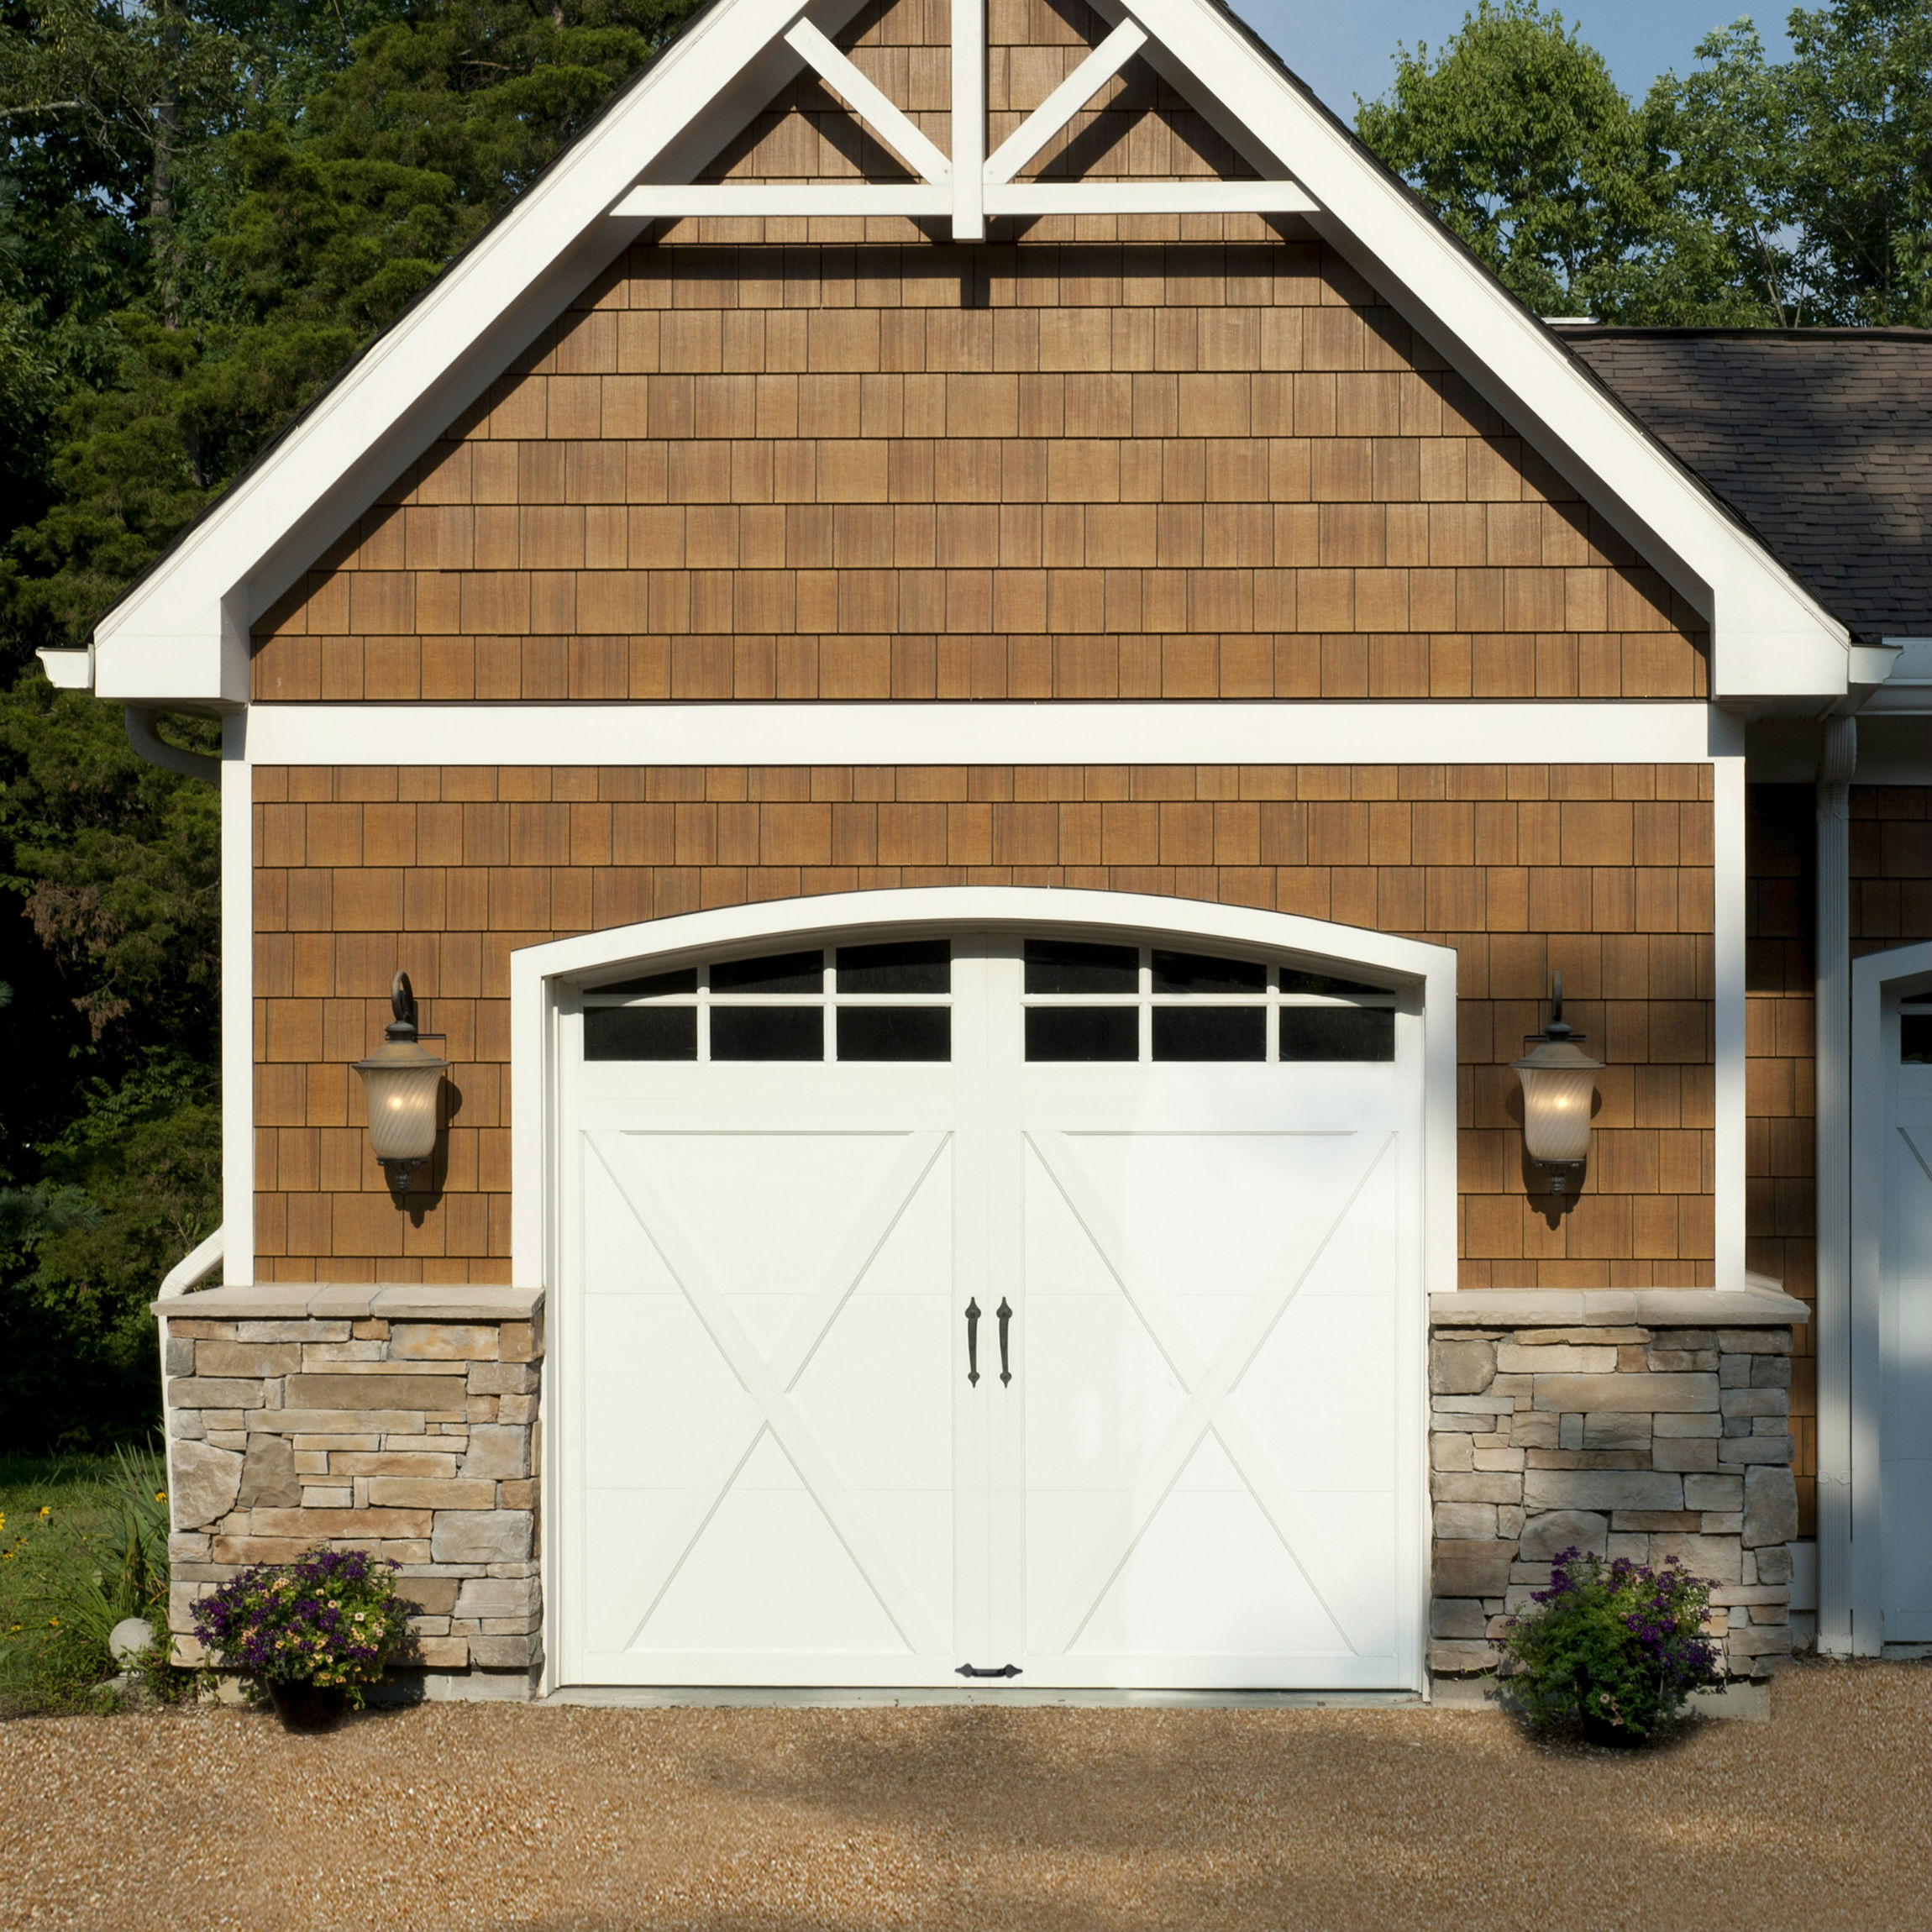 doors beneficial to up also swing build rich barn sliding plan for elements framing out door inspiration how your pole importance of garage